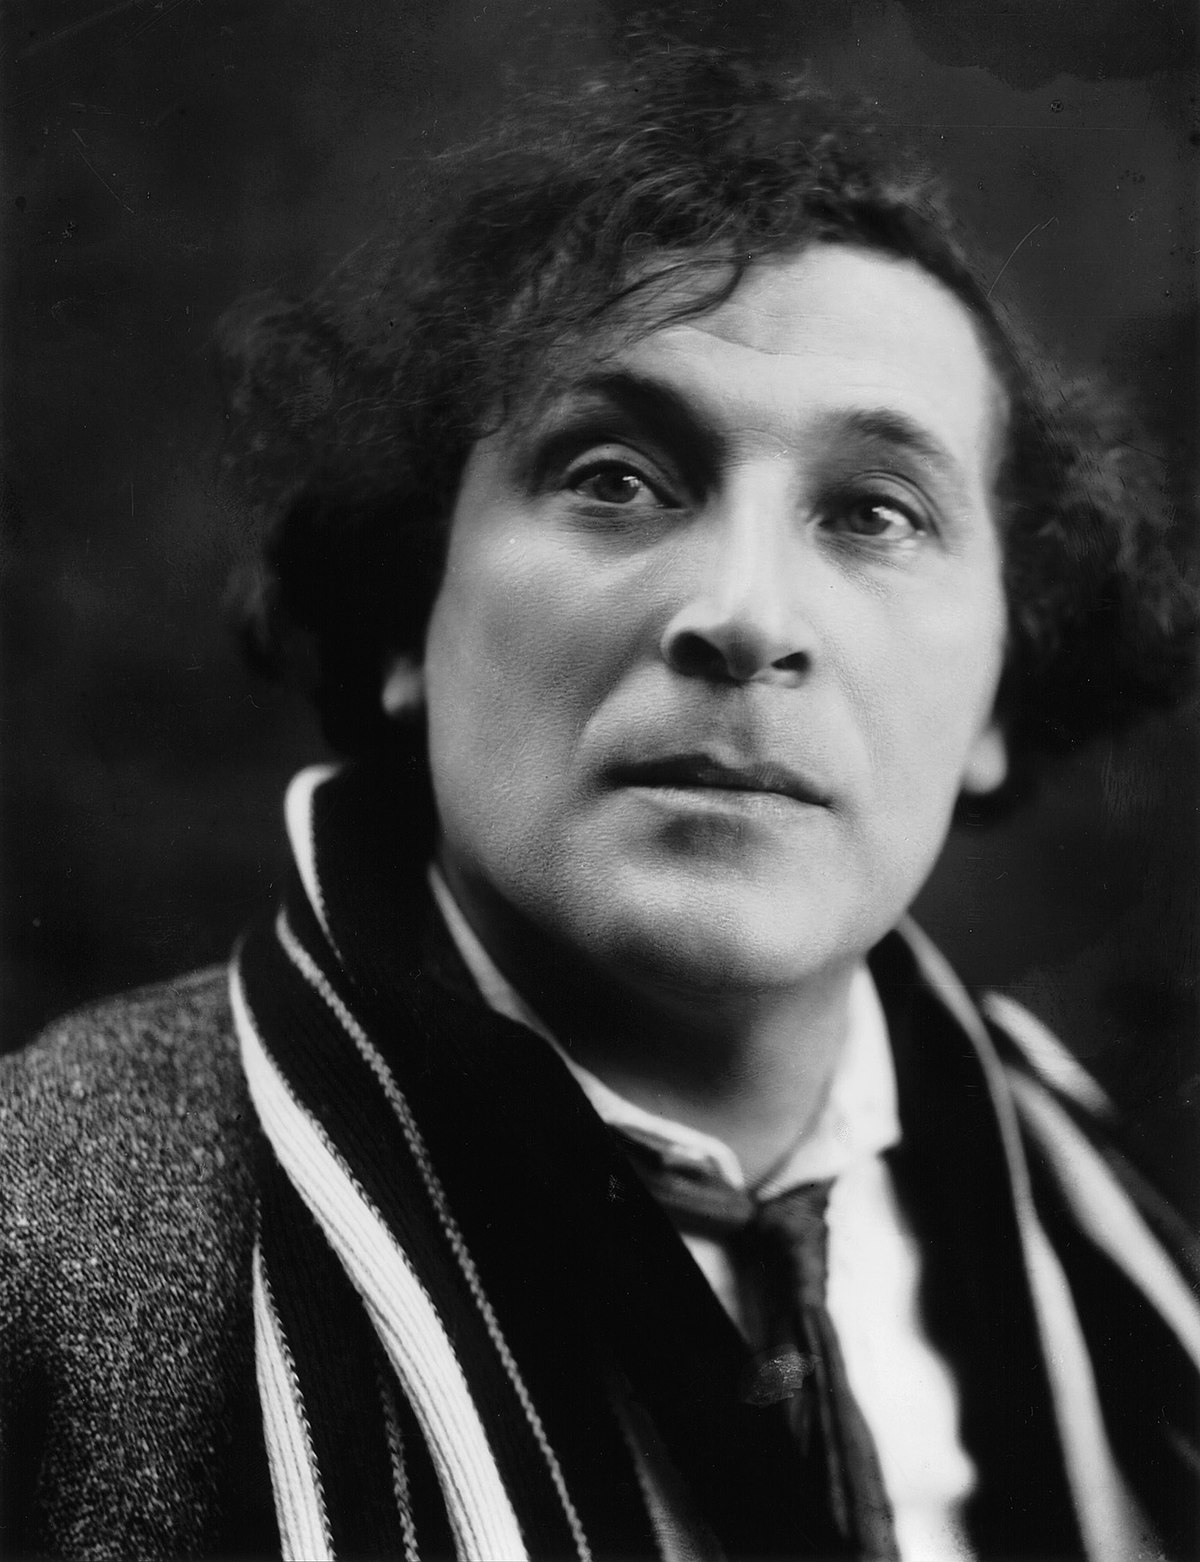 marc chagall courant artistique : marc chagall english :  marc chagall interview en 2020/2021